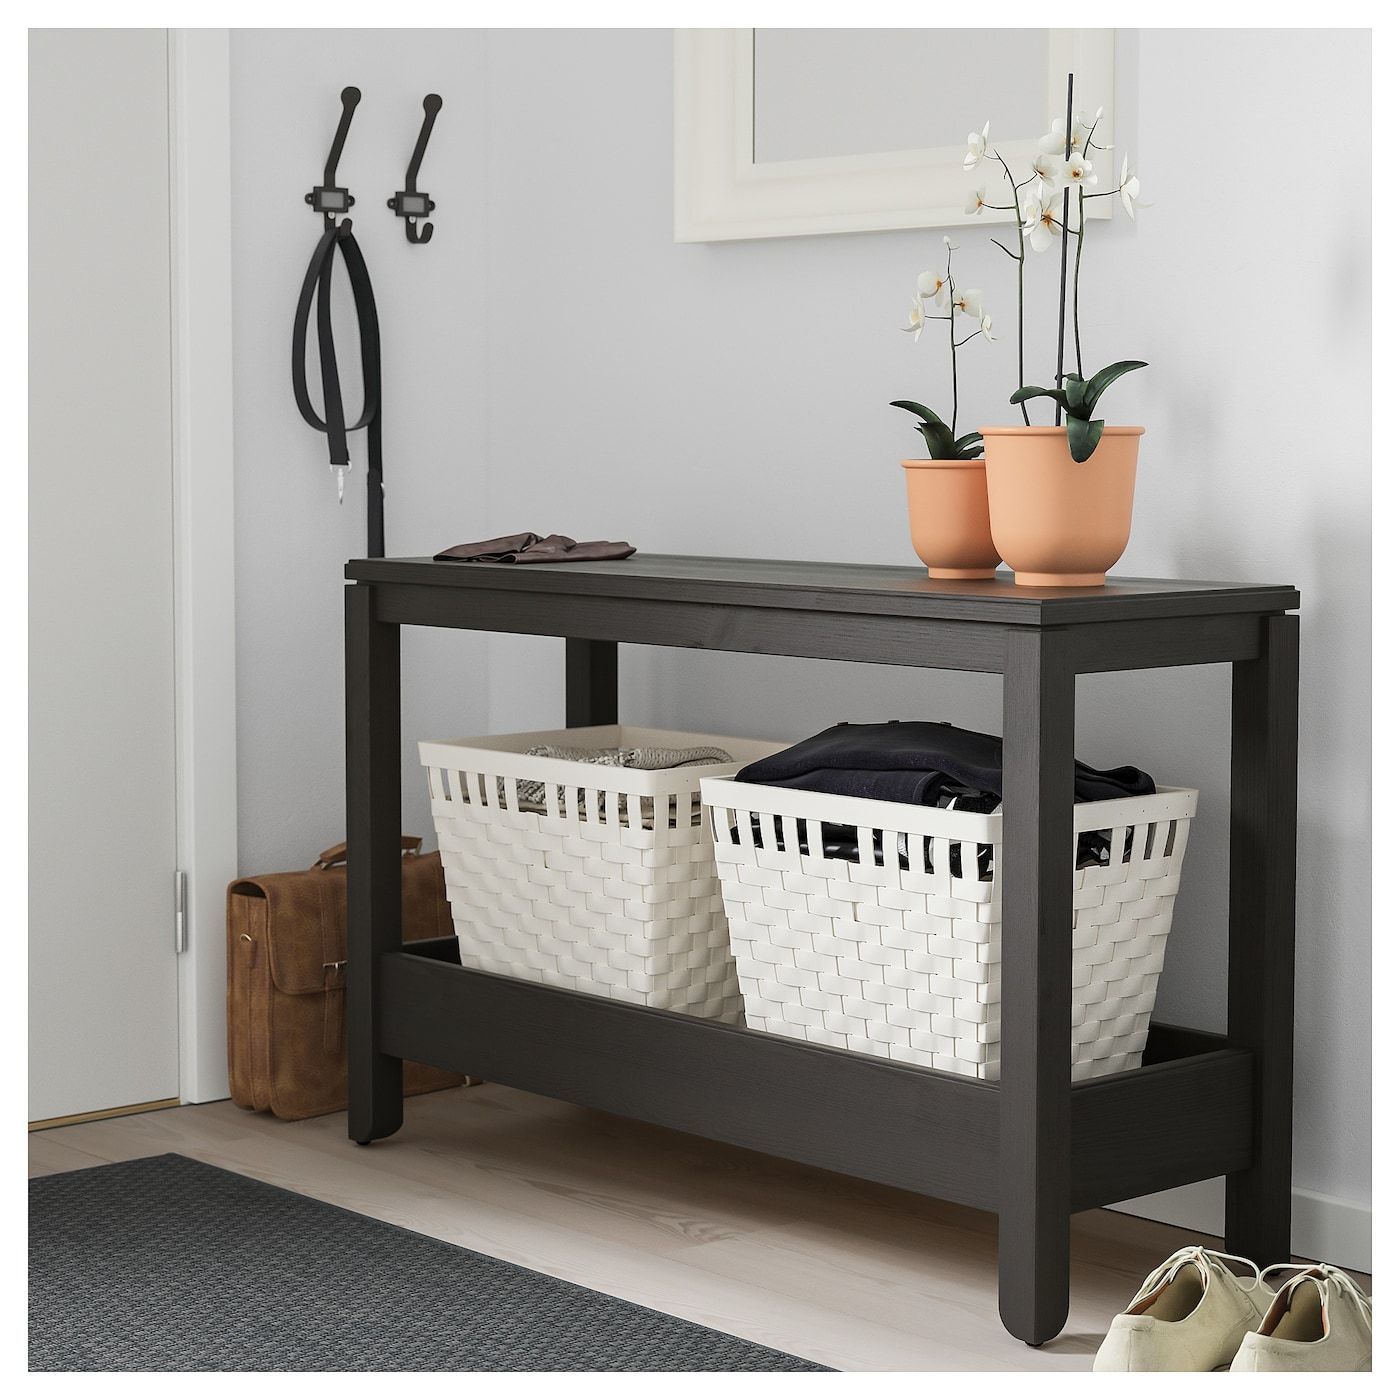 Havsta Console Table Dark Brown Ikea Ablagetisch Brown Console Dark Havsta Ikea Table In 2020 Ablagetisch Ikea Kleinmobel